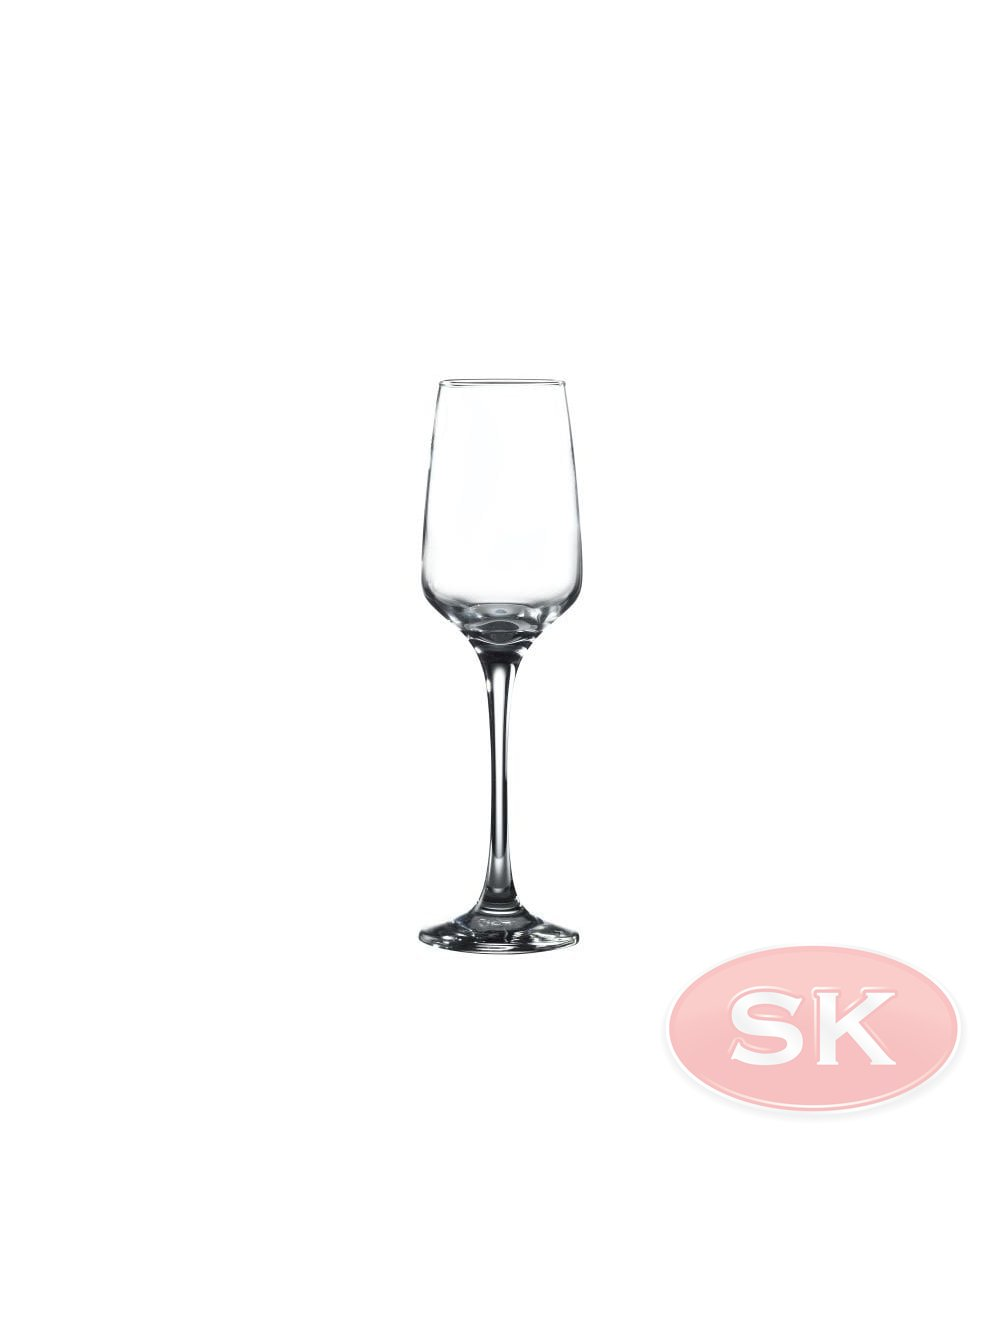 Genware Lal Champagne Wine Glass 23cl 8oz Pack Of 6 Barware From Sylvester Keal Uk